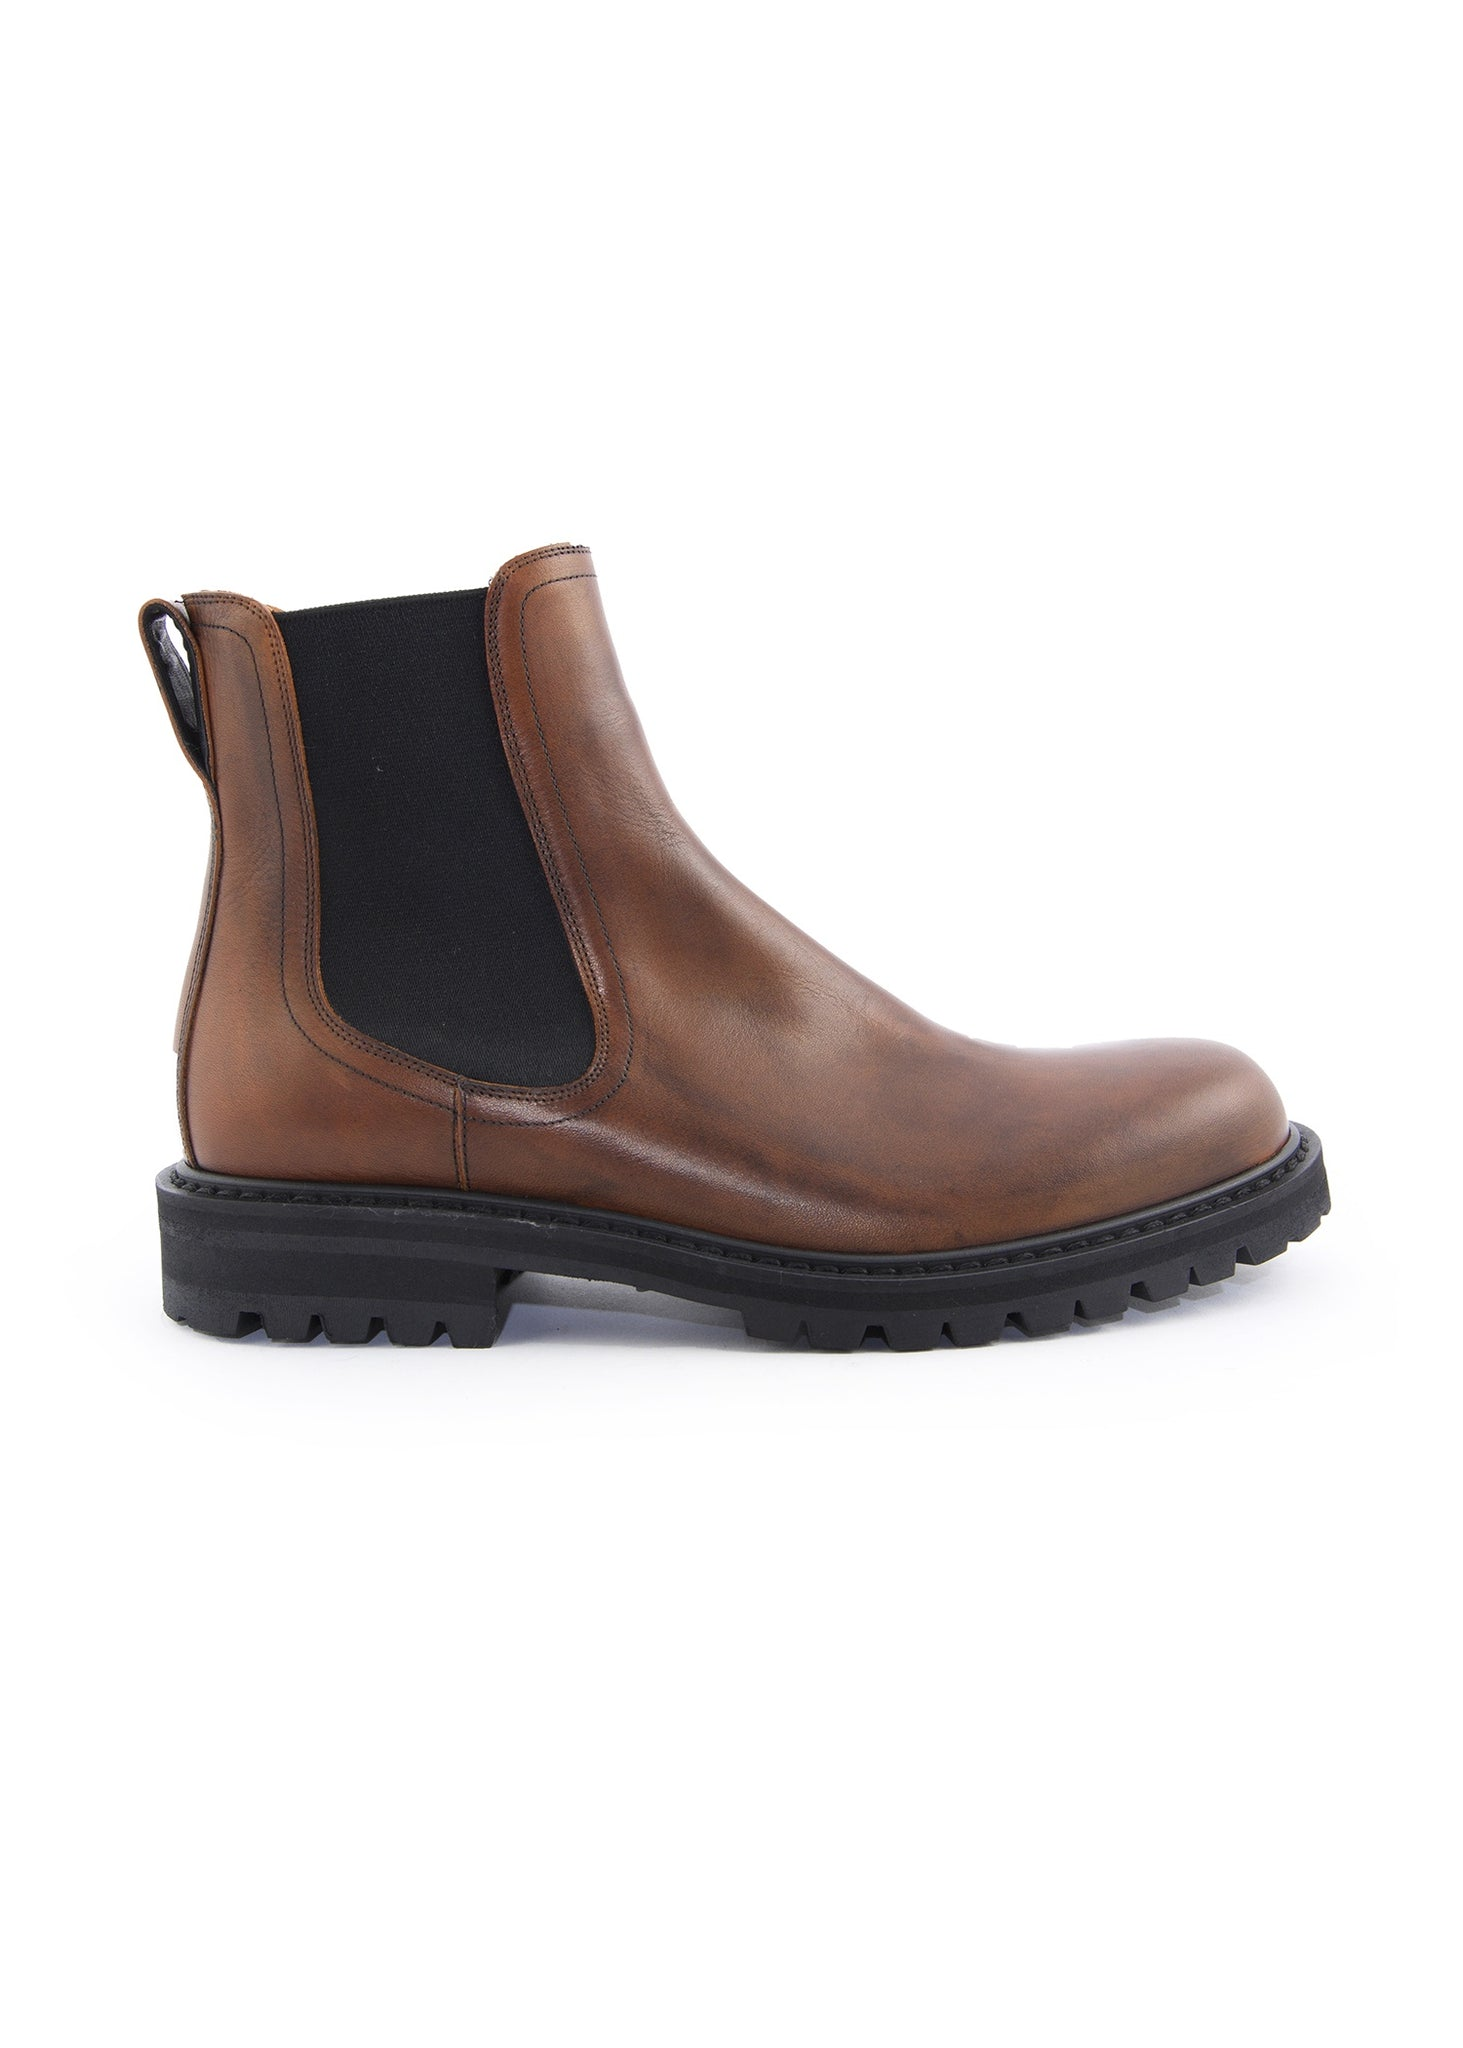 Bottes Chelsea en Cuir Brunes|Brown Leather Chelsea Boots